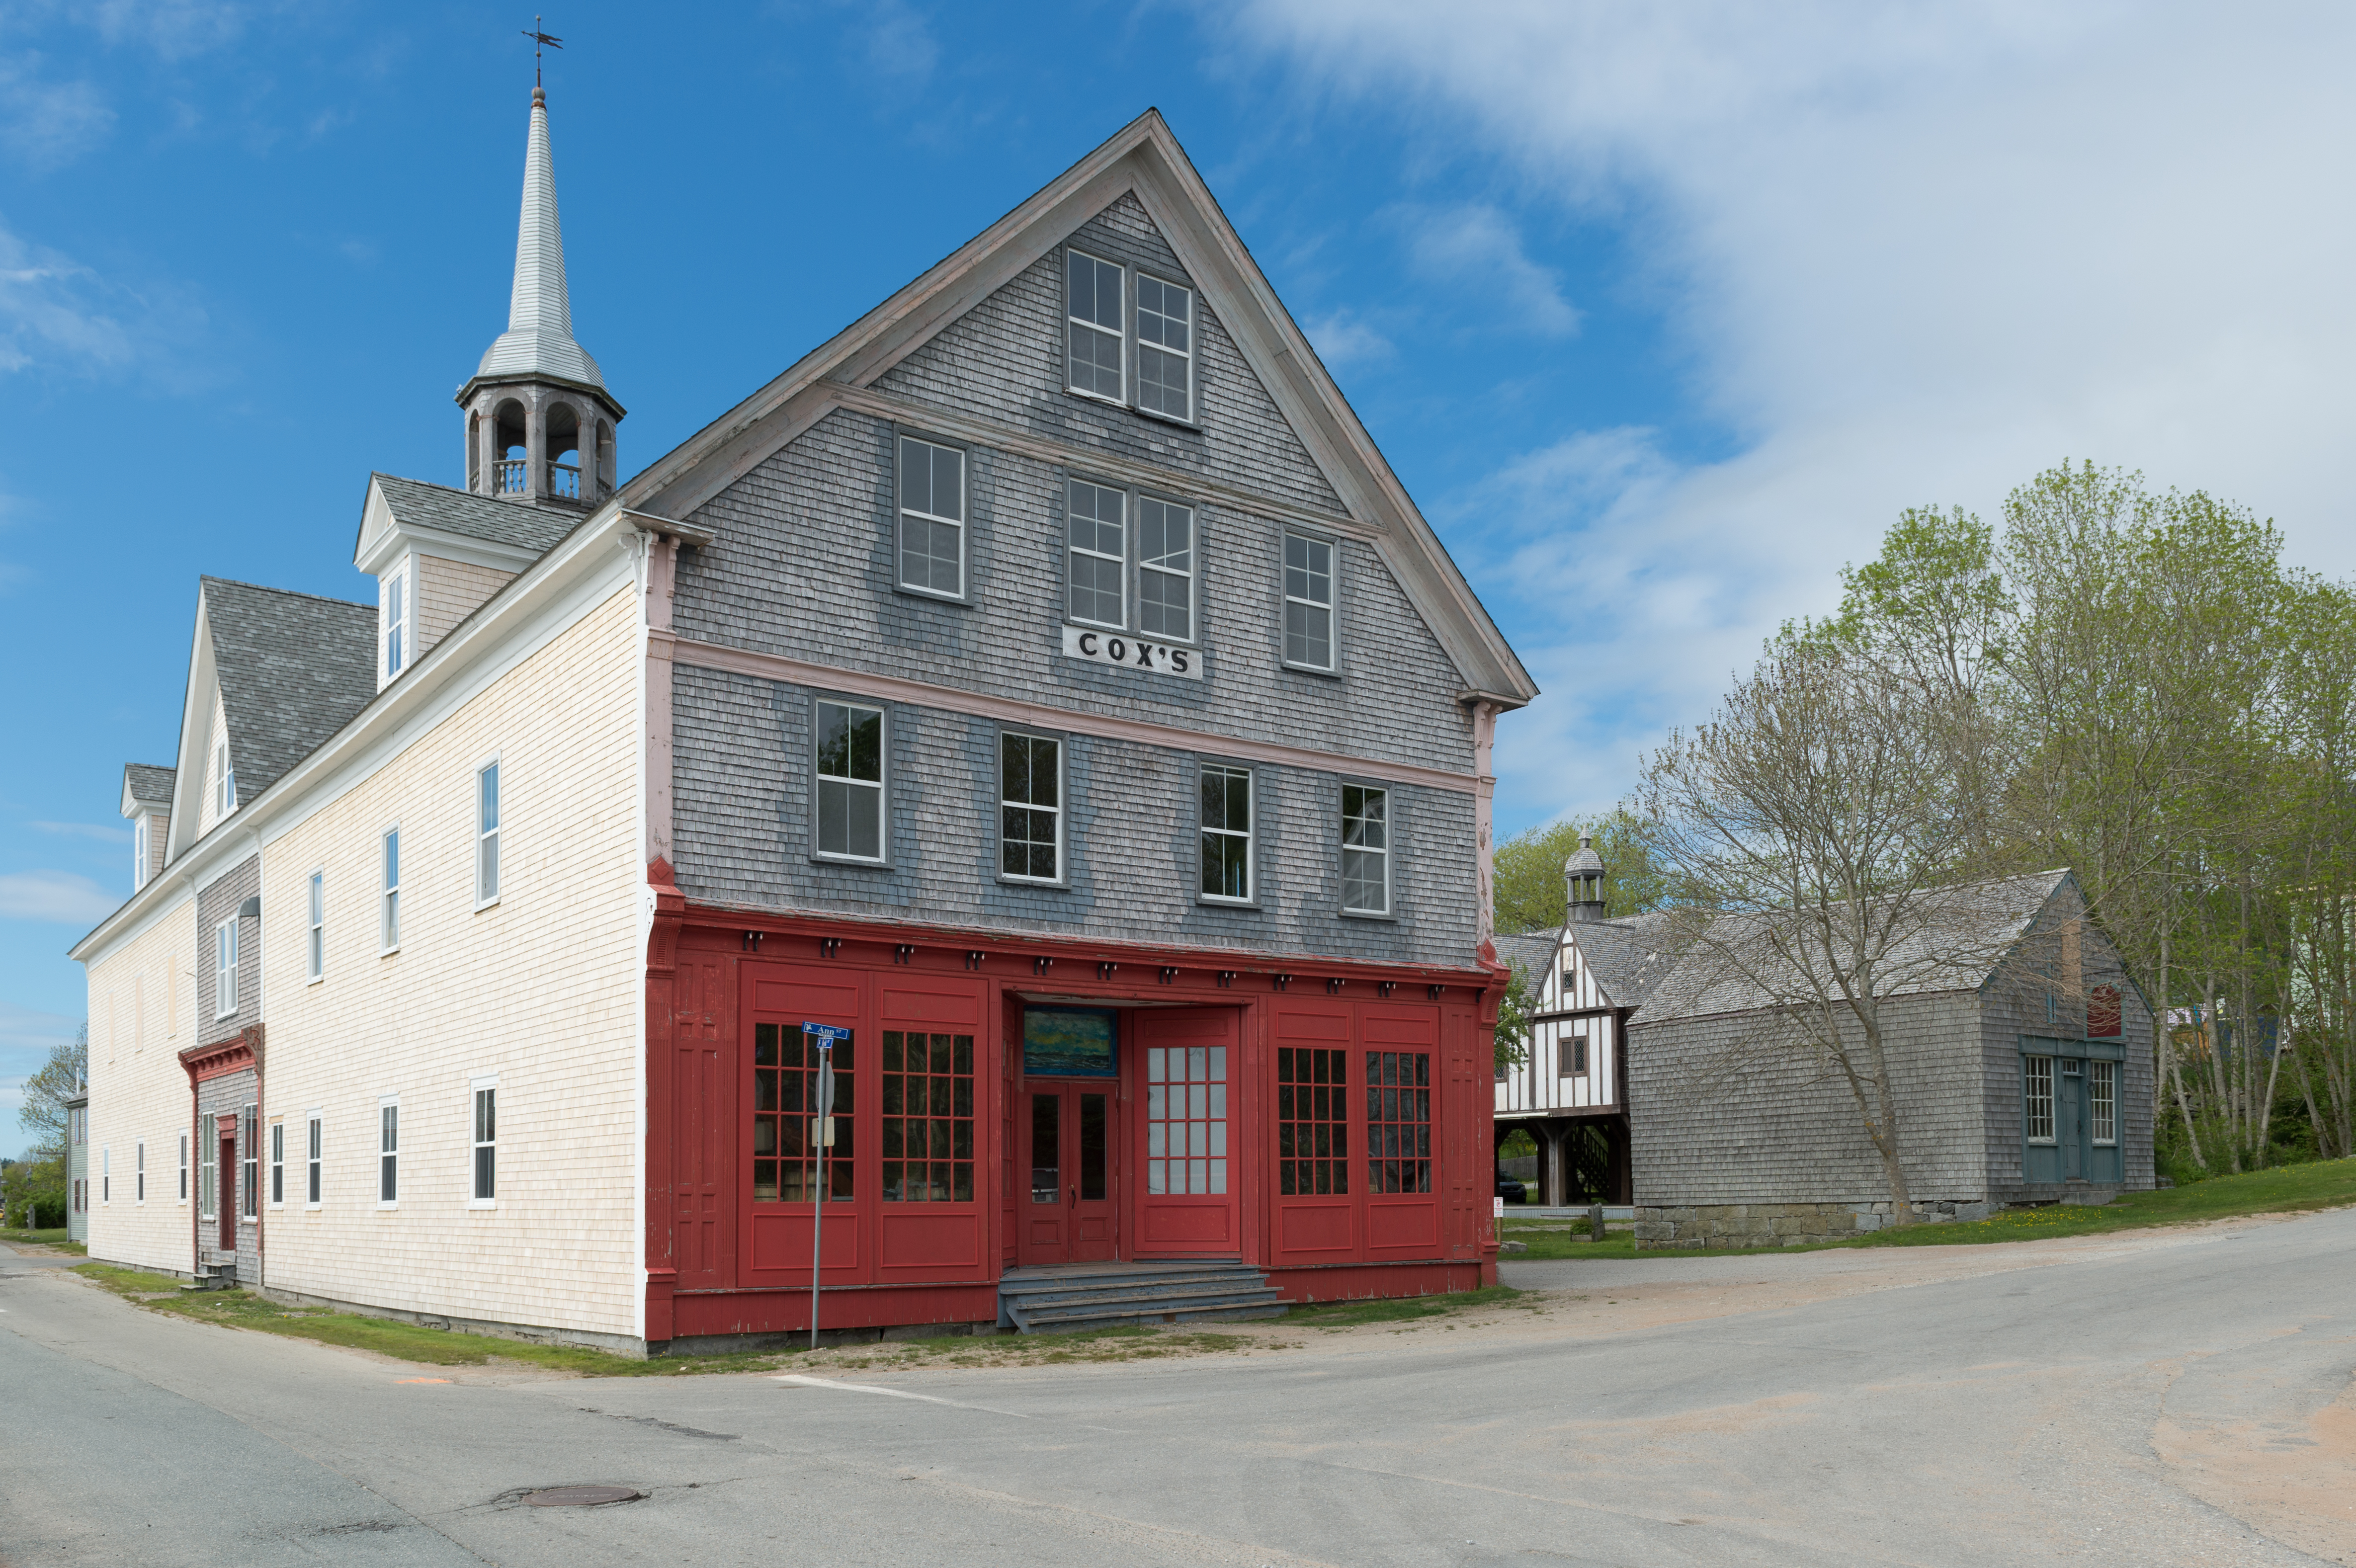 Cox´s Warehouse, Shelburne Nova Scotia